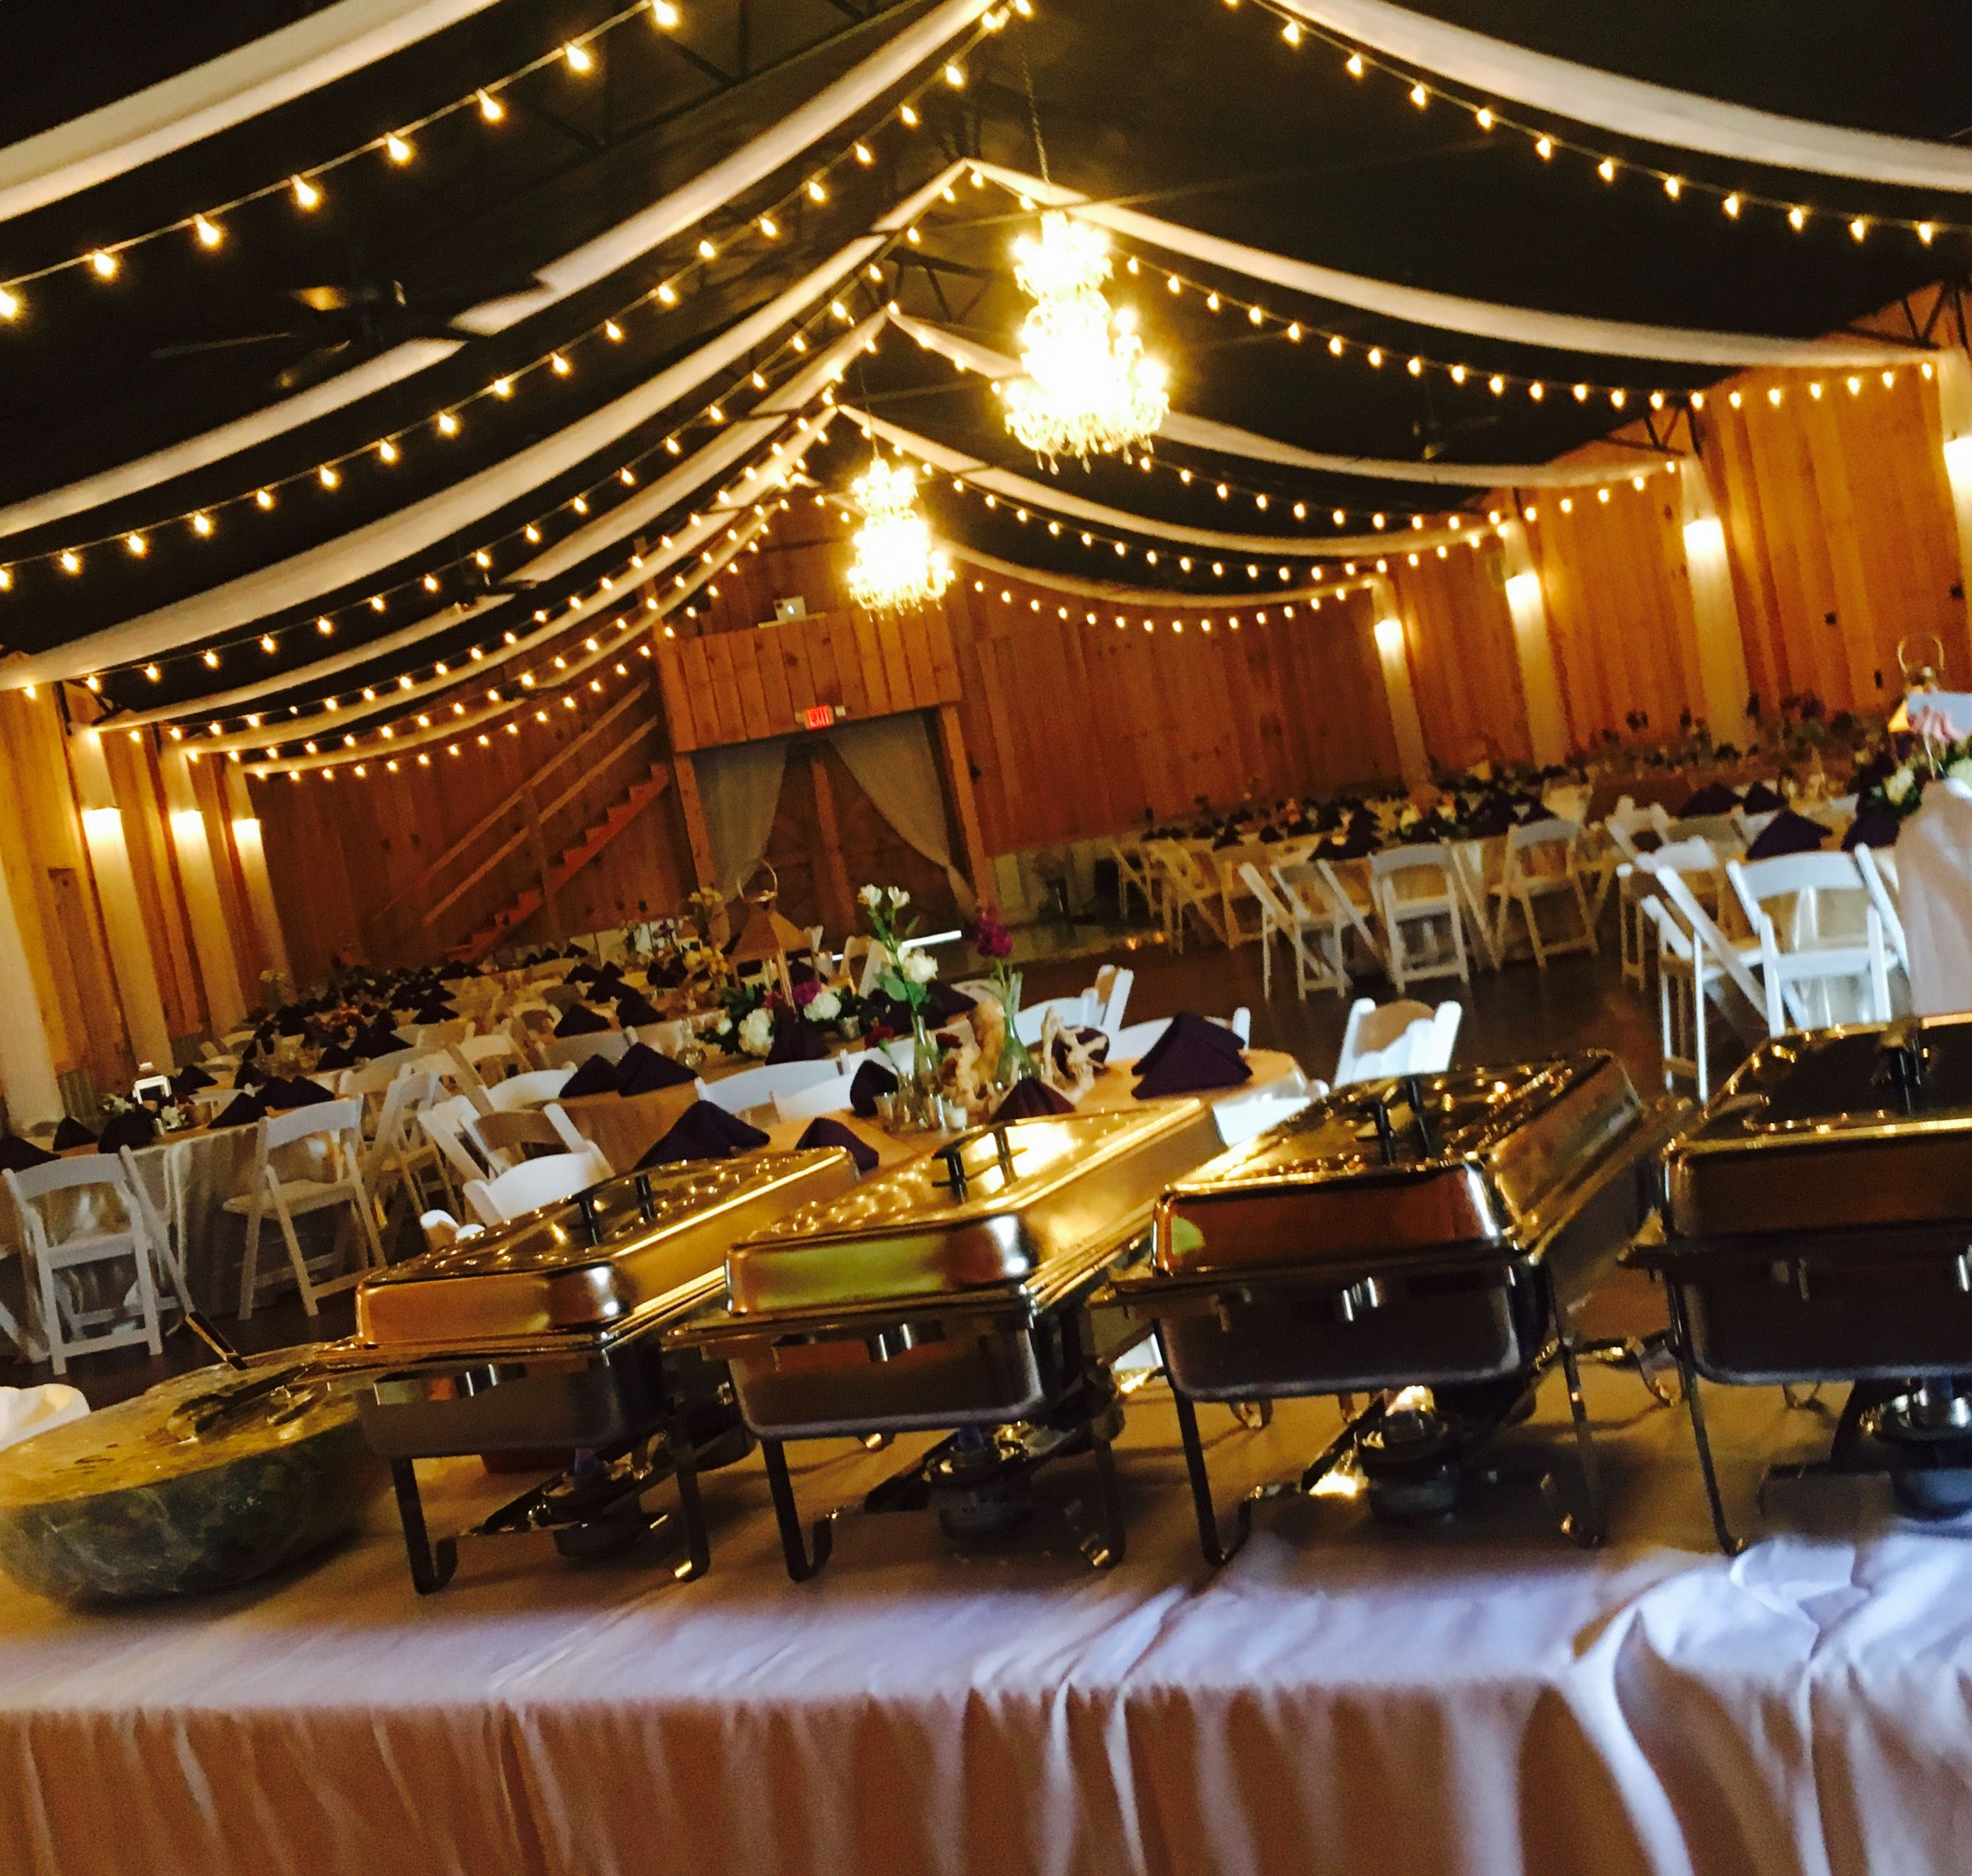 Apple Market Pensacola Wedding Catering Sowell Farms Buffet Meal FL